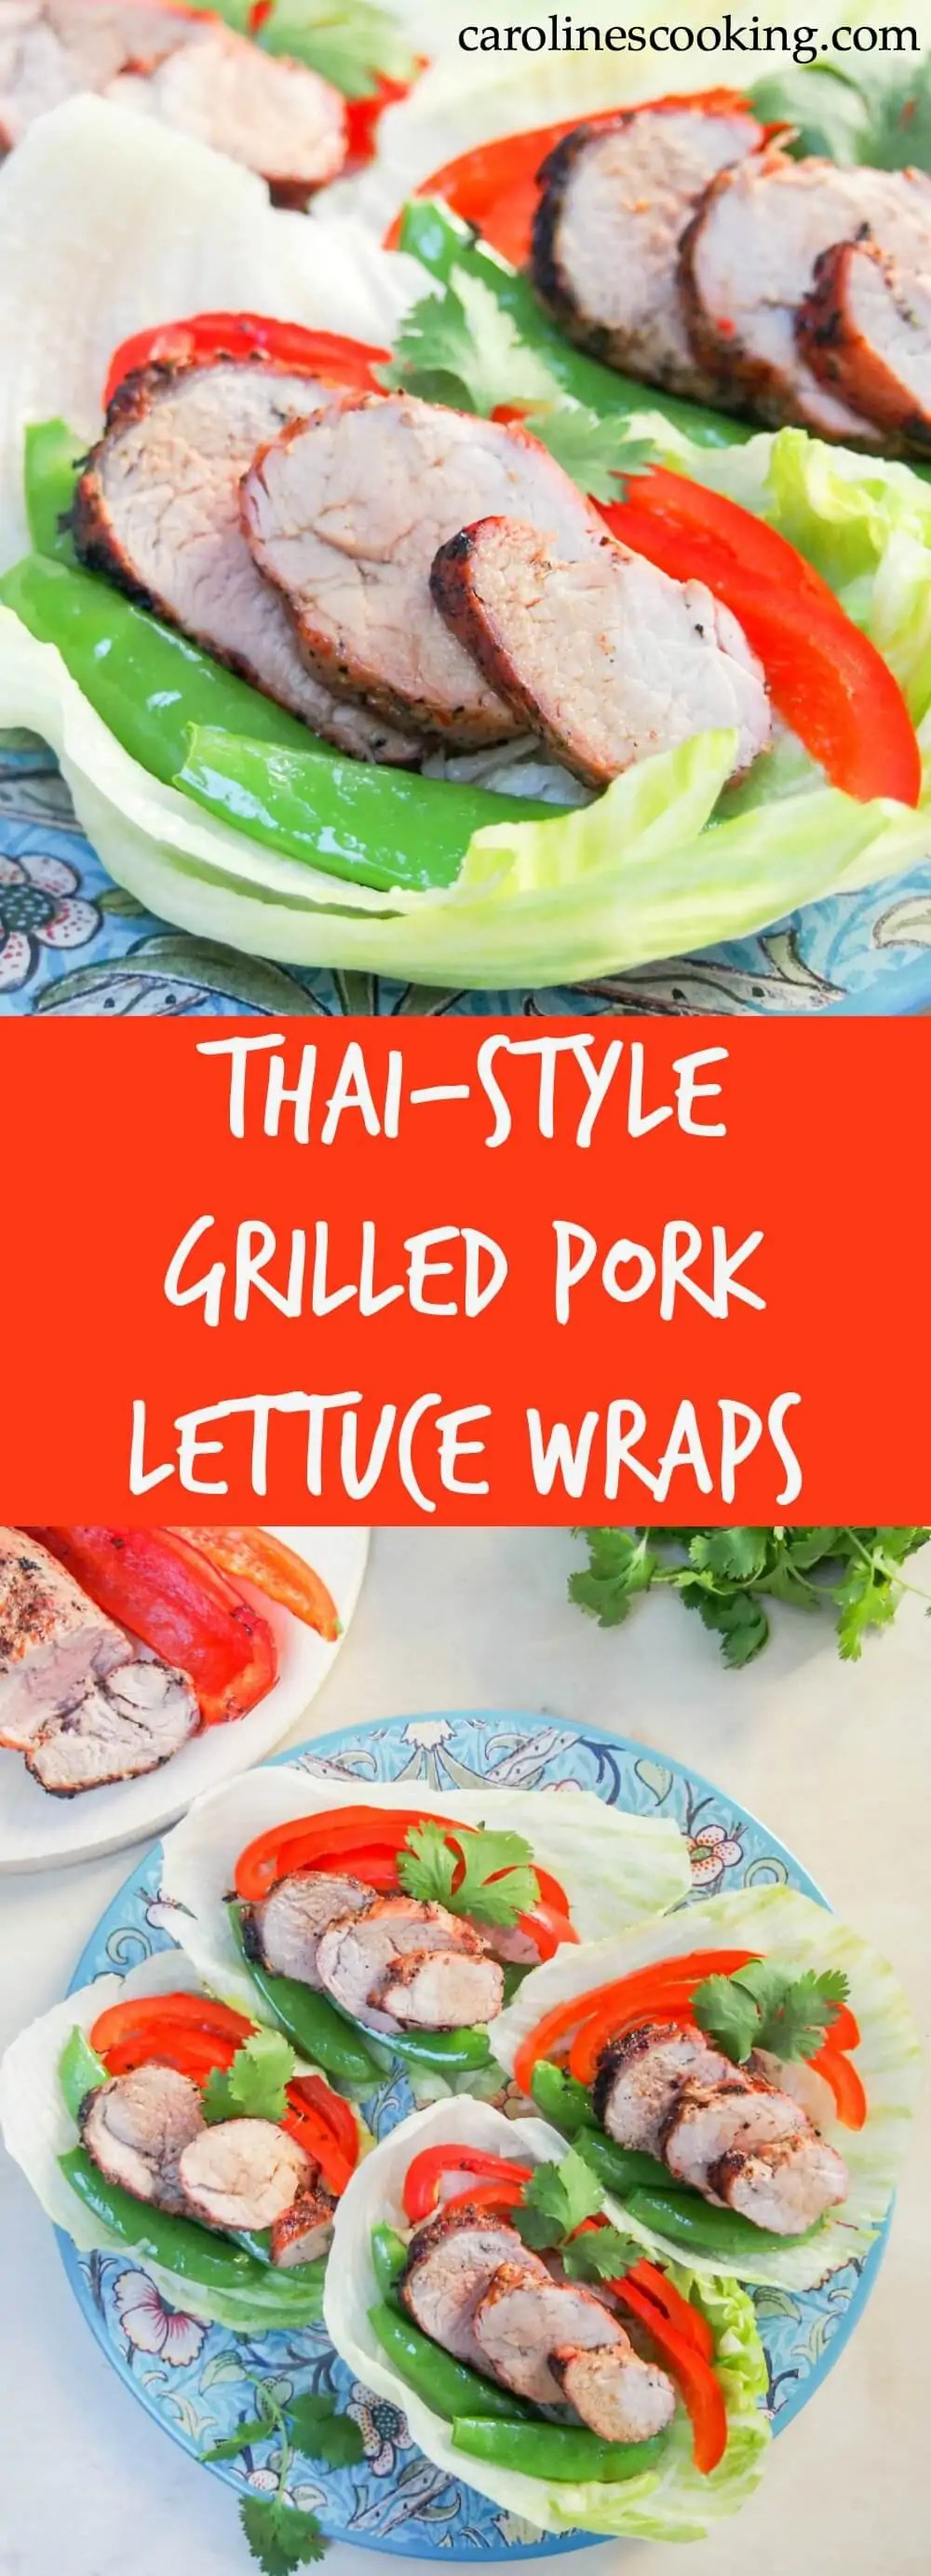 These Thai-style grilled pork lettuce wraps are incredibly easy to make, packed with veggies and delicious flavors. They make a great, light summery meal. AD @Walmart @SmithfieldFoods